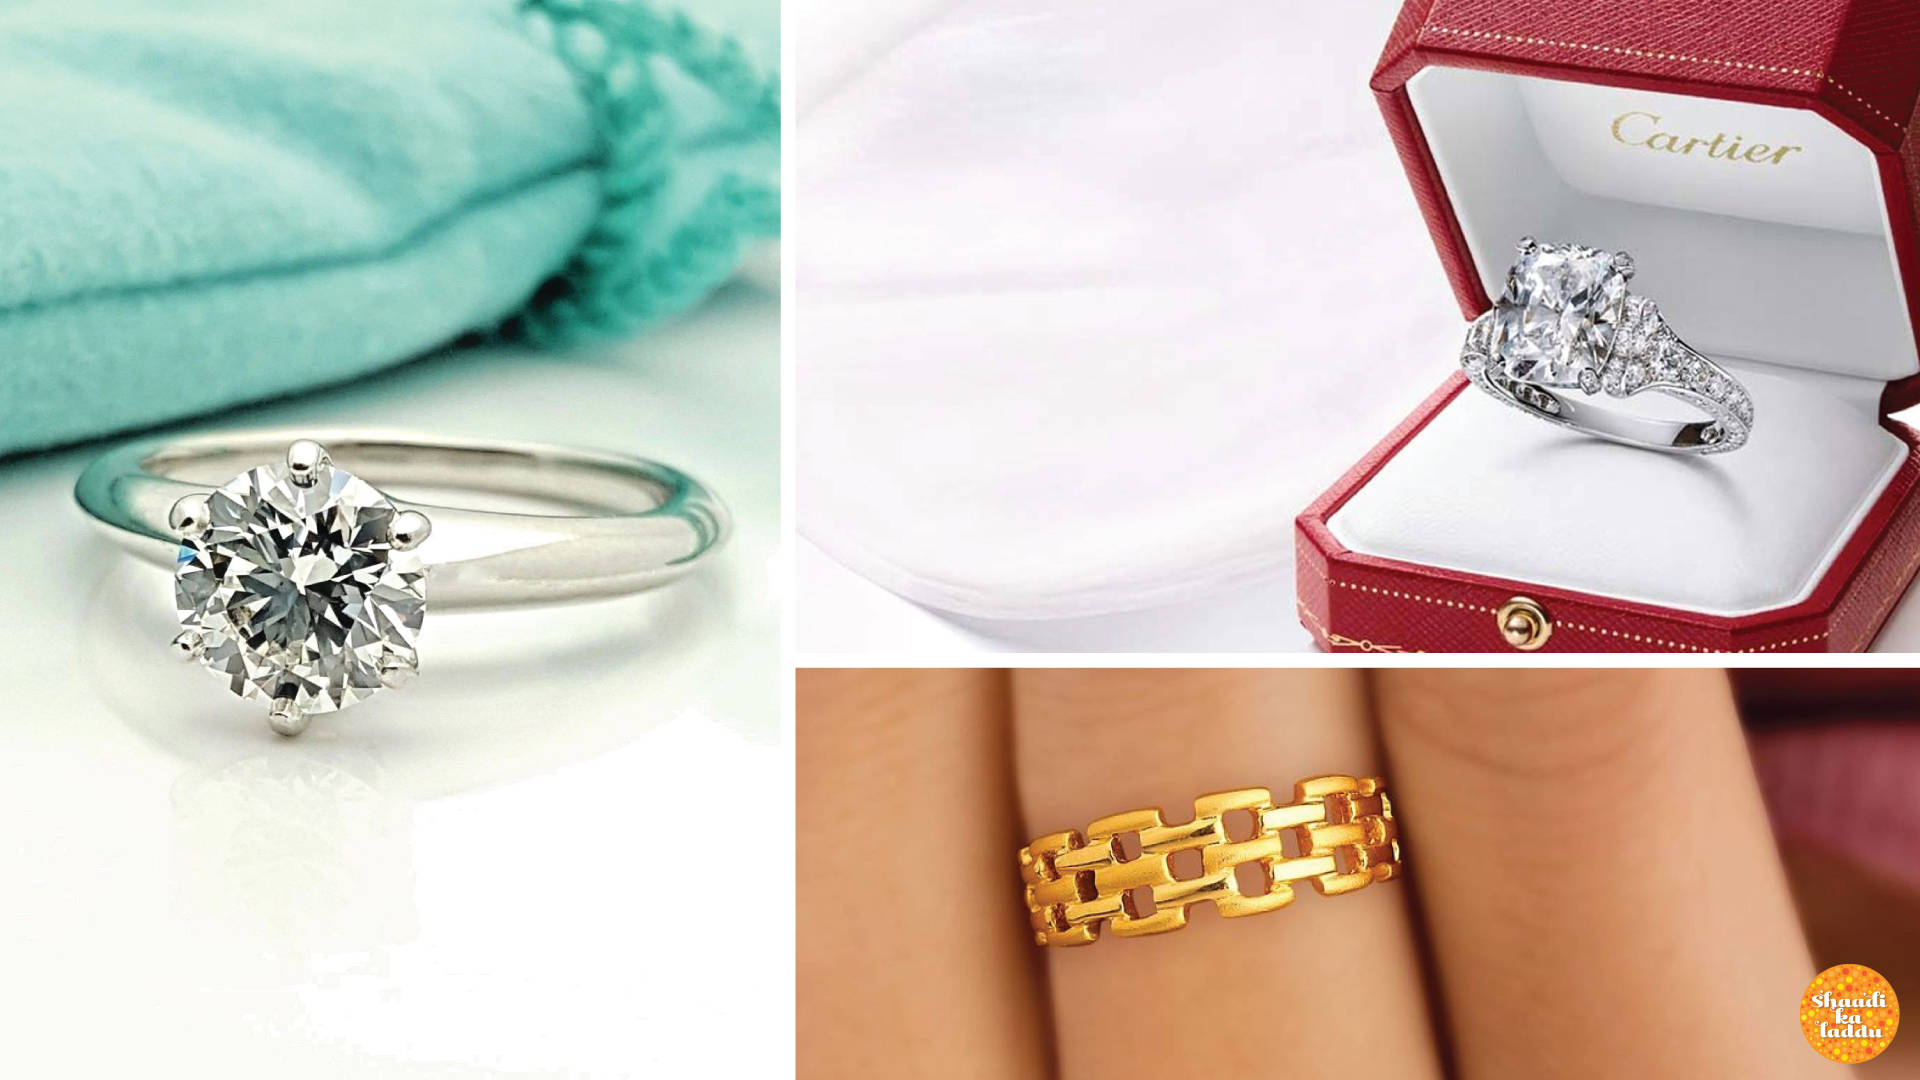 Engagement ring collection from Cartier